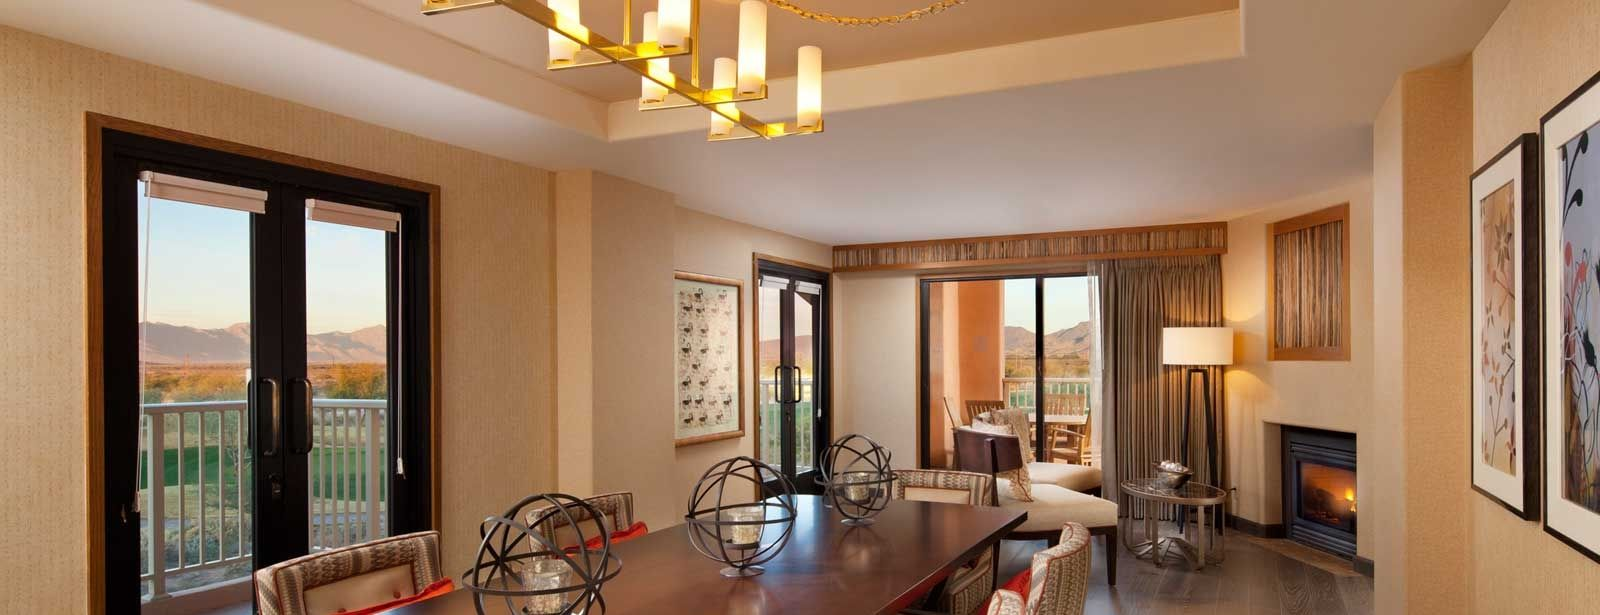 Luxurious Presidential Suite at the Sheraton Grand at Wild Horse Pass Resort